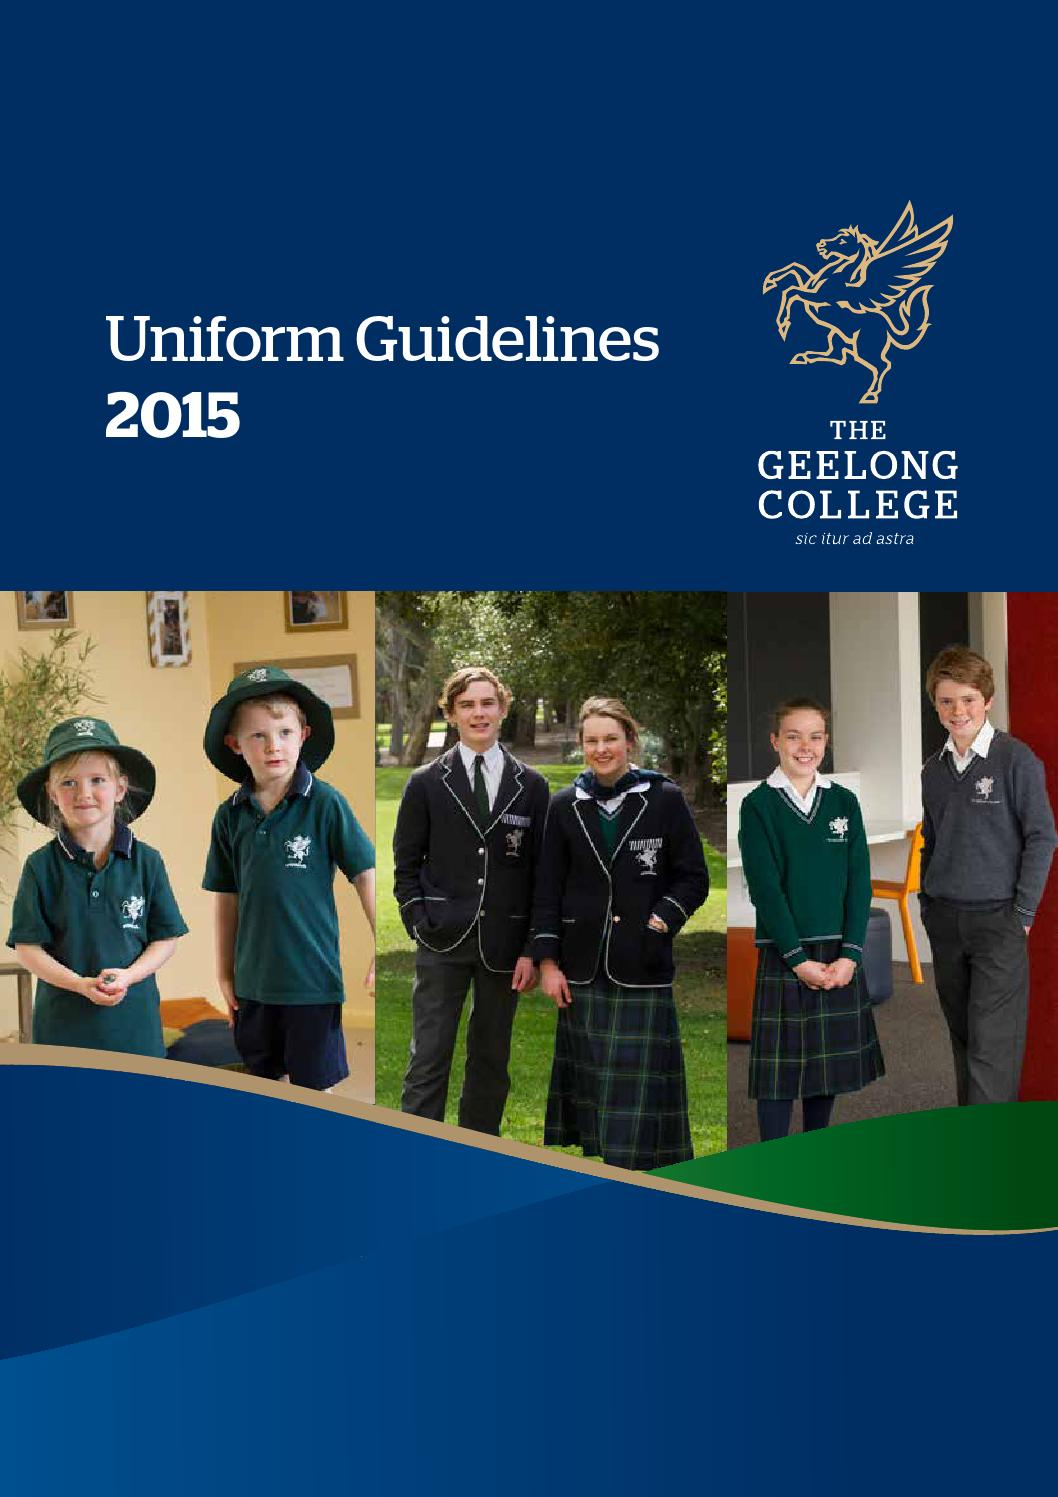 Uniform Guidelines 2015 By Geelong College Issuu